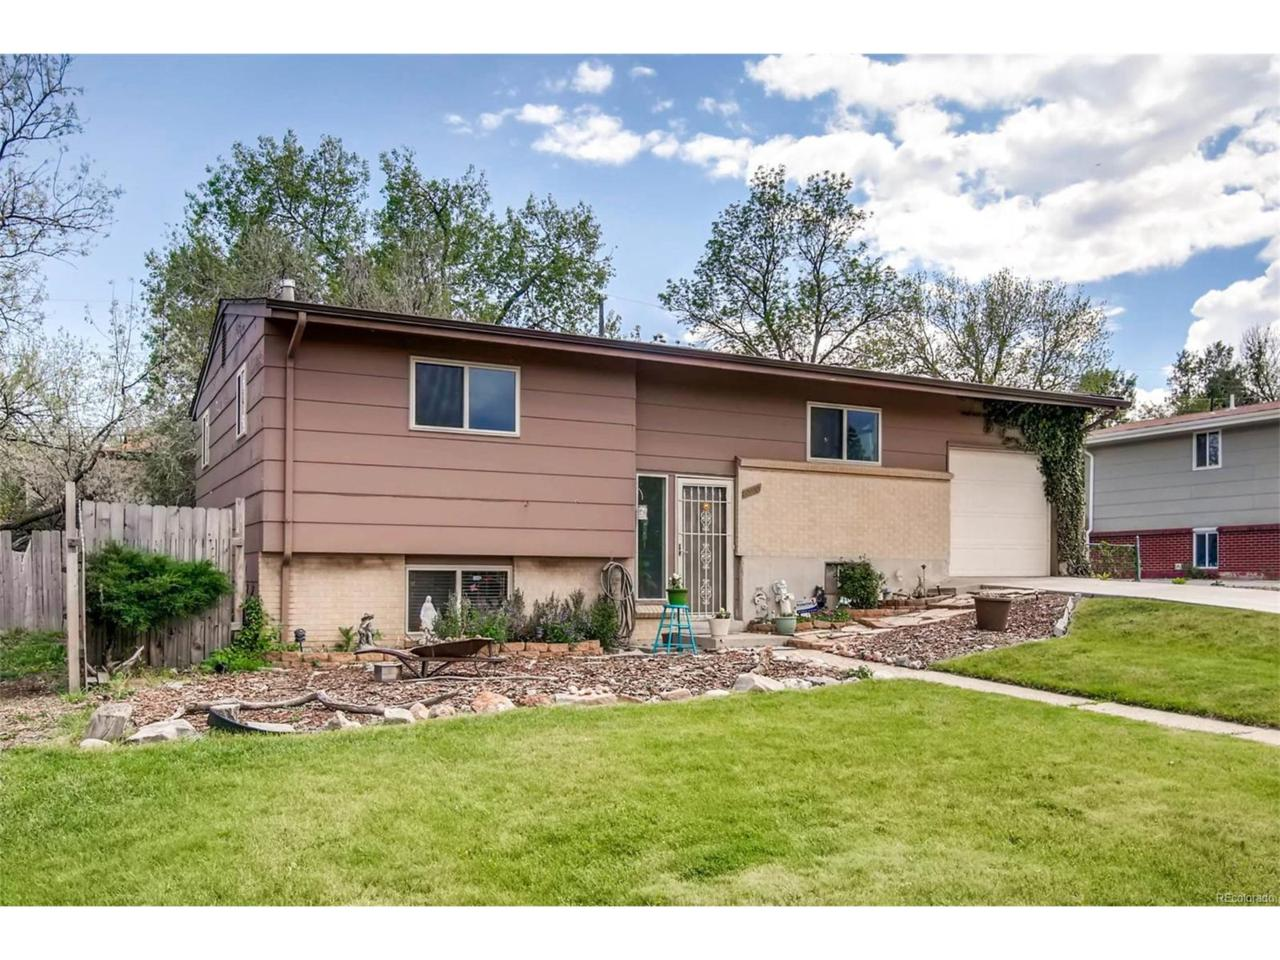 10980 West Exposition Avenue, Lakewood, CO 80226 (MLS #5327838) :: 8z Real Estate